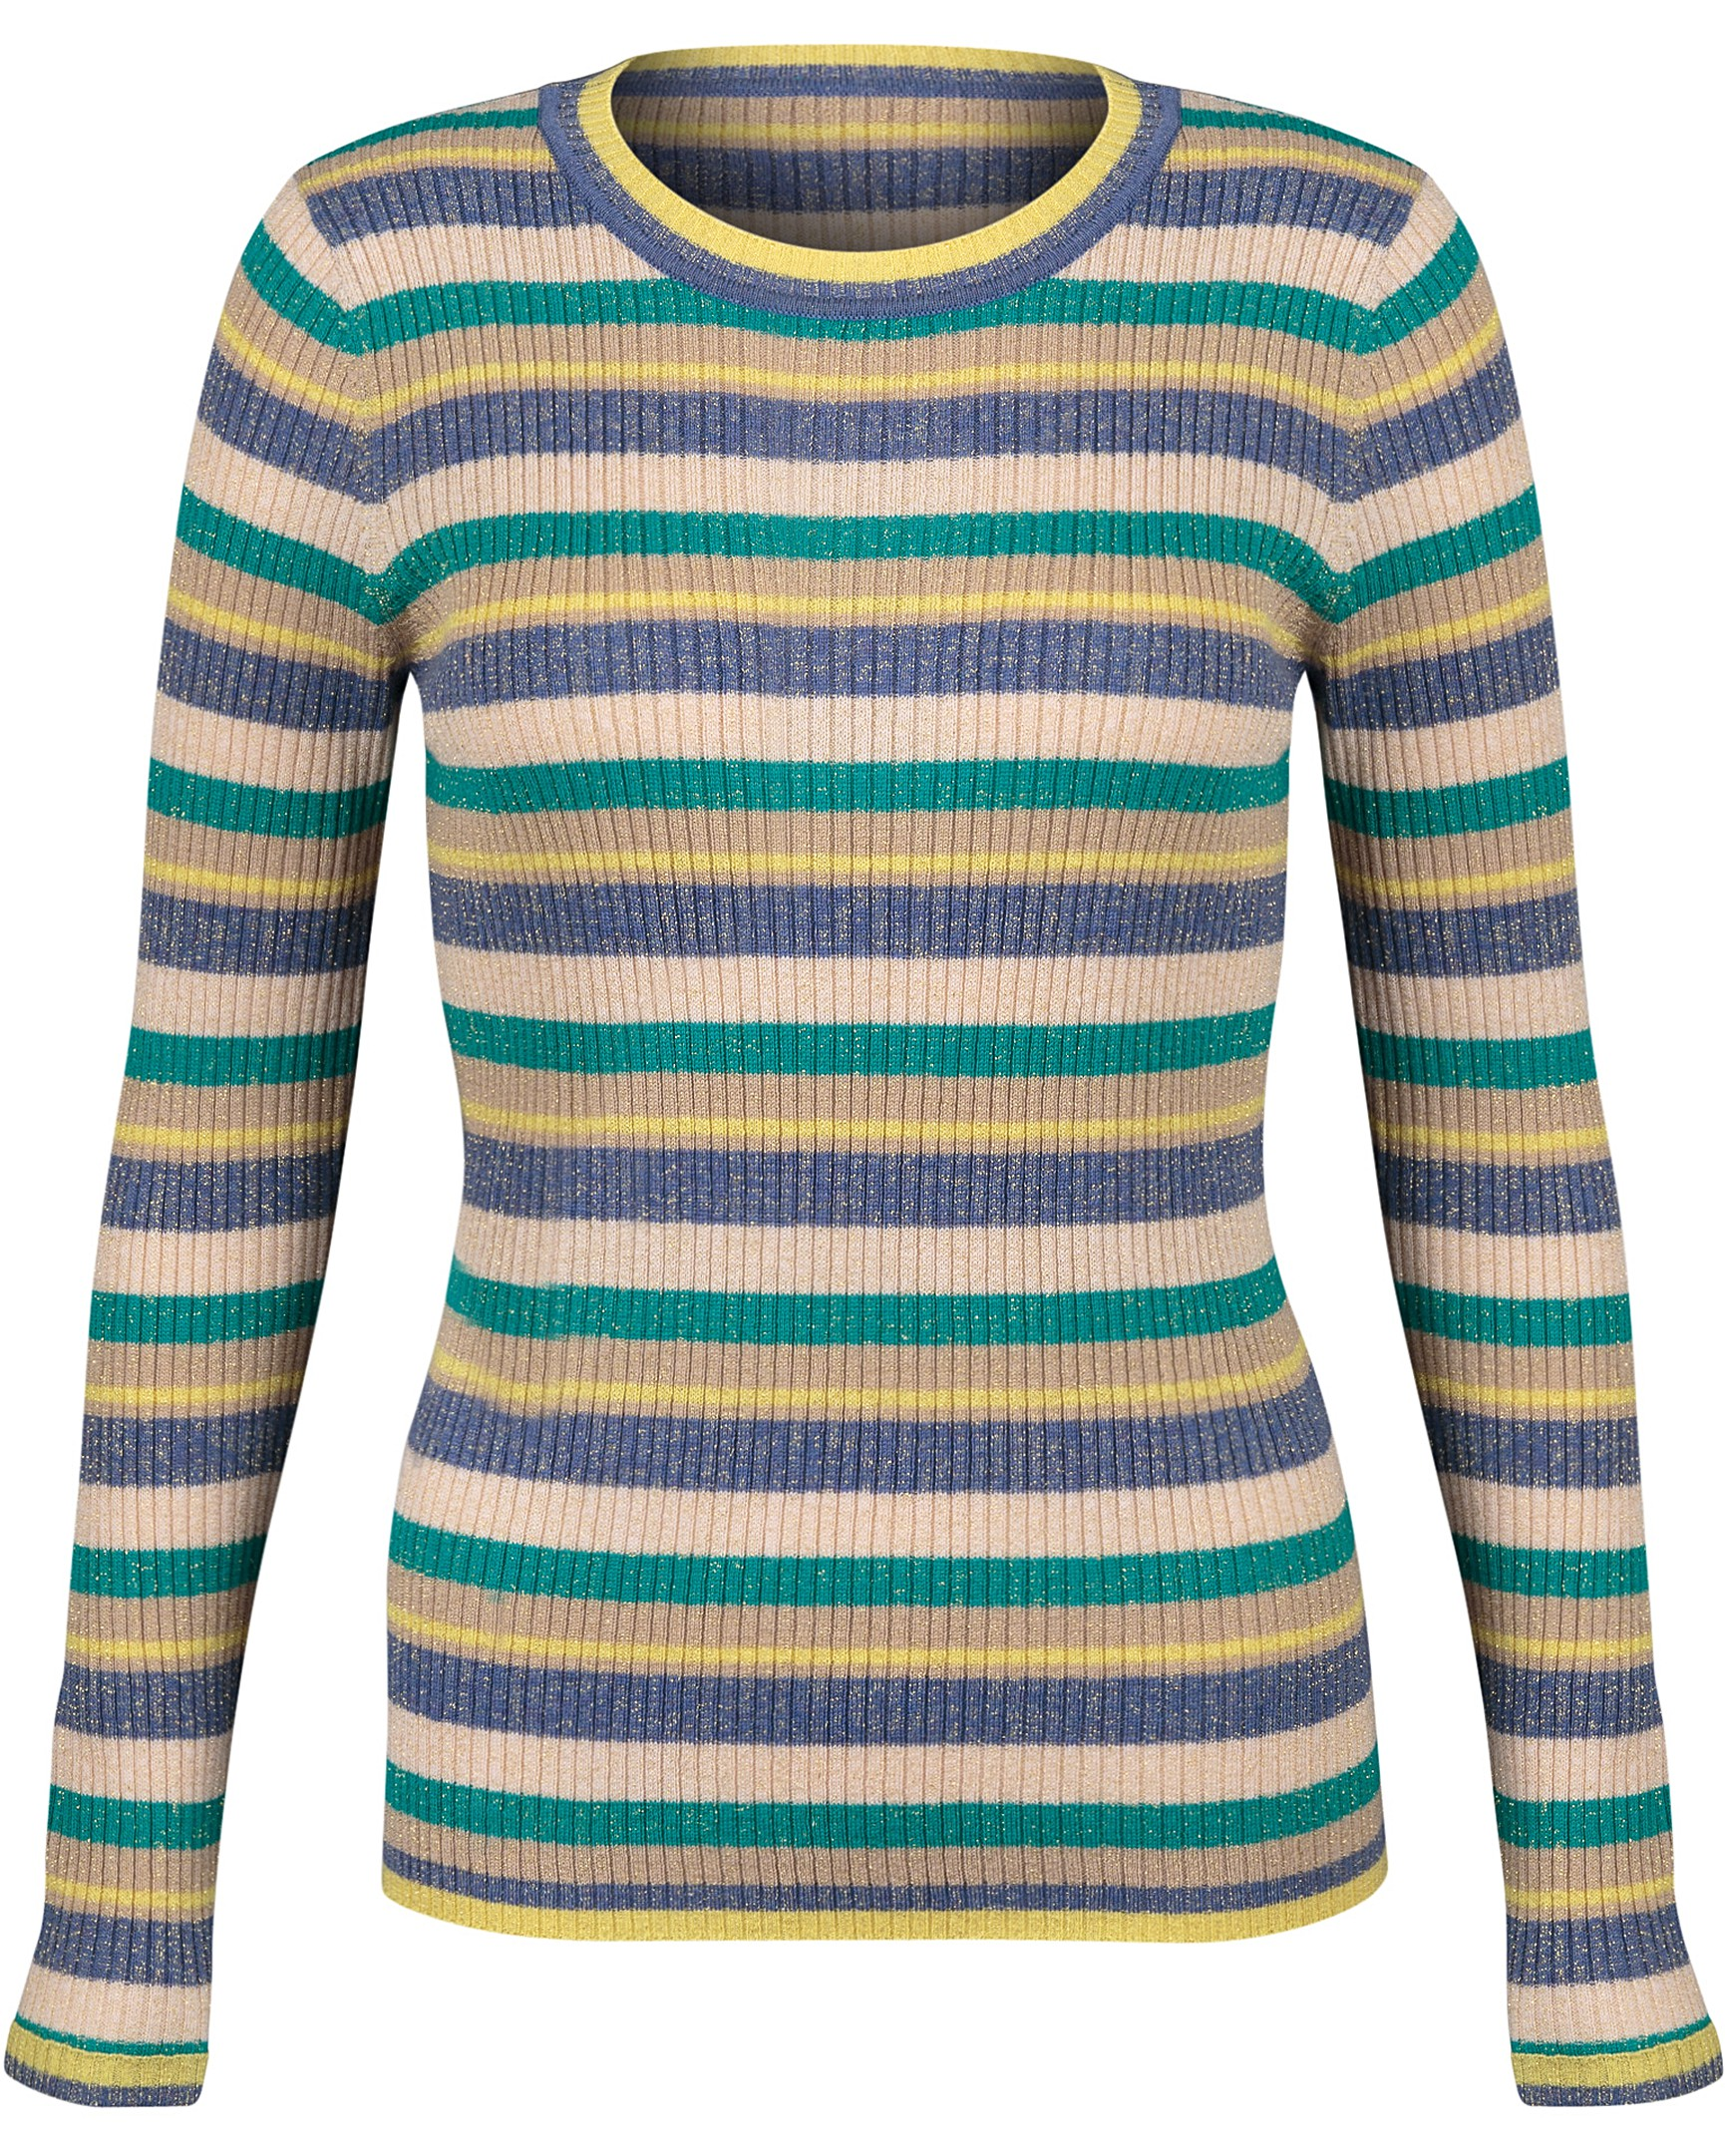 191fbf80b0e9a Ivy Striped Jumper